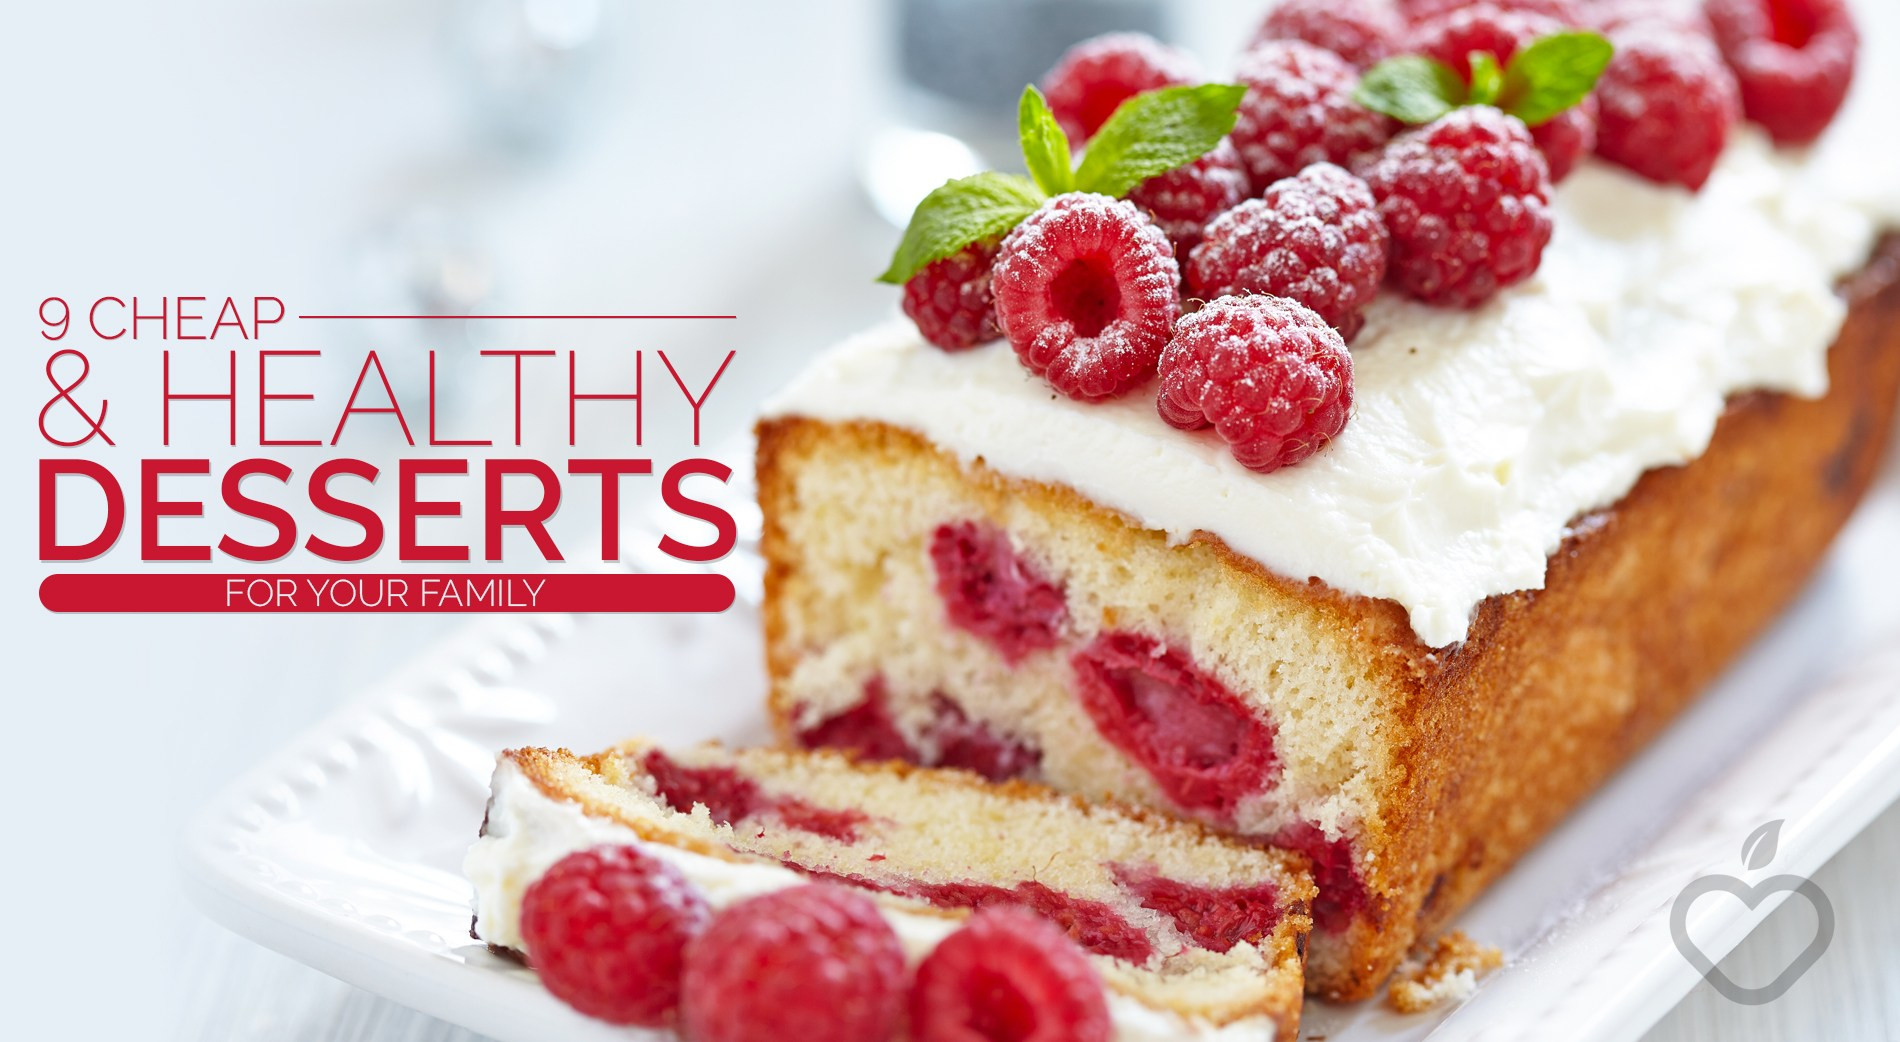 Healthy Desserts For One  9 Cheap And Healthy Desserts For Your Family